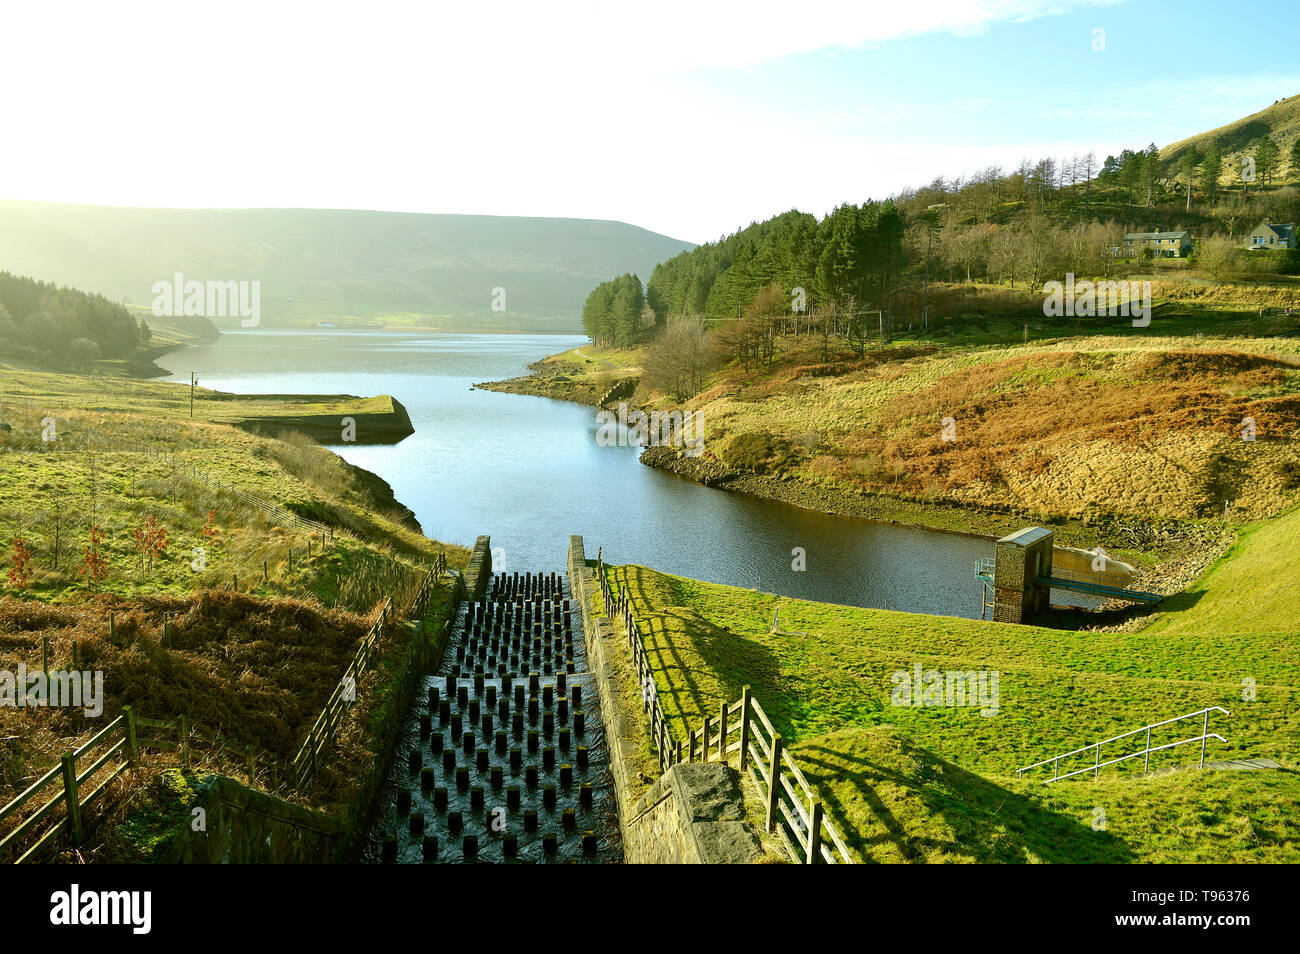 The overflow stepped spillway from Yeoman Hey Reservoir into Dovestone Reservoir on a misty sunny day - Stock Image